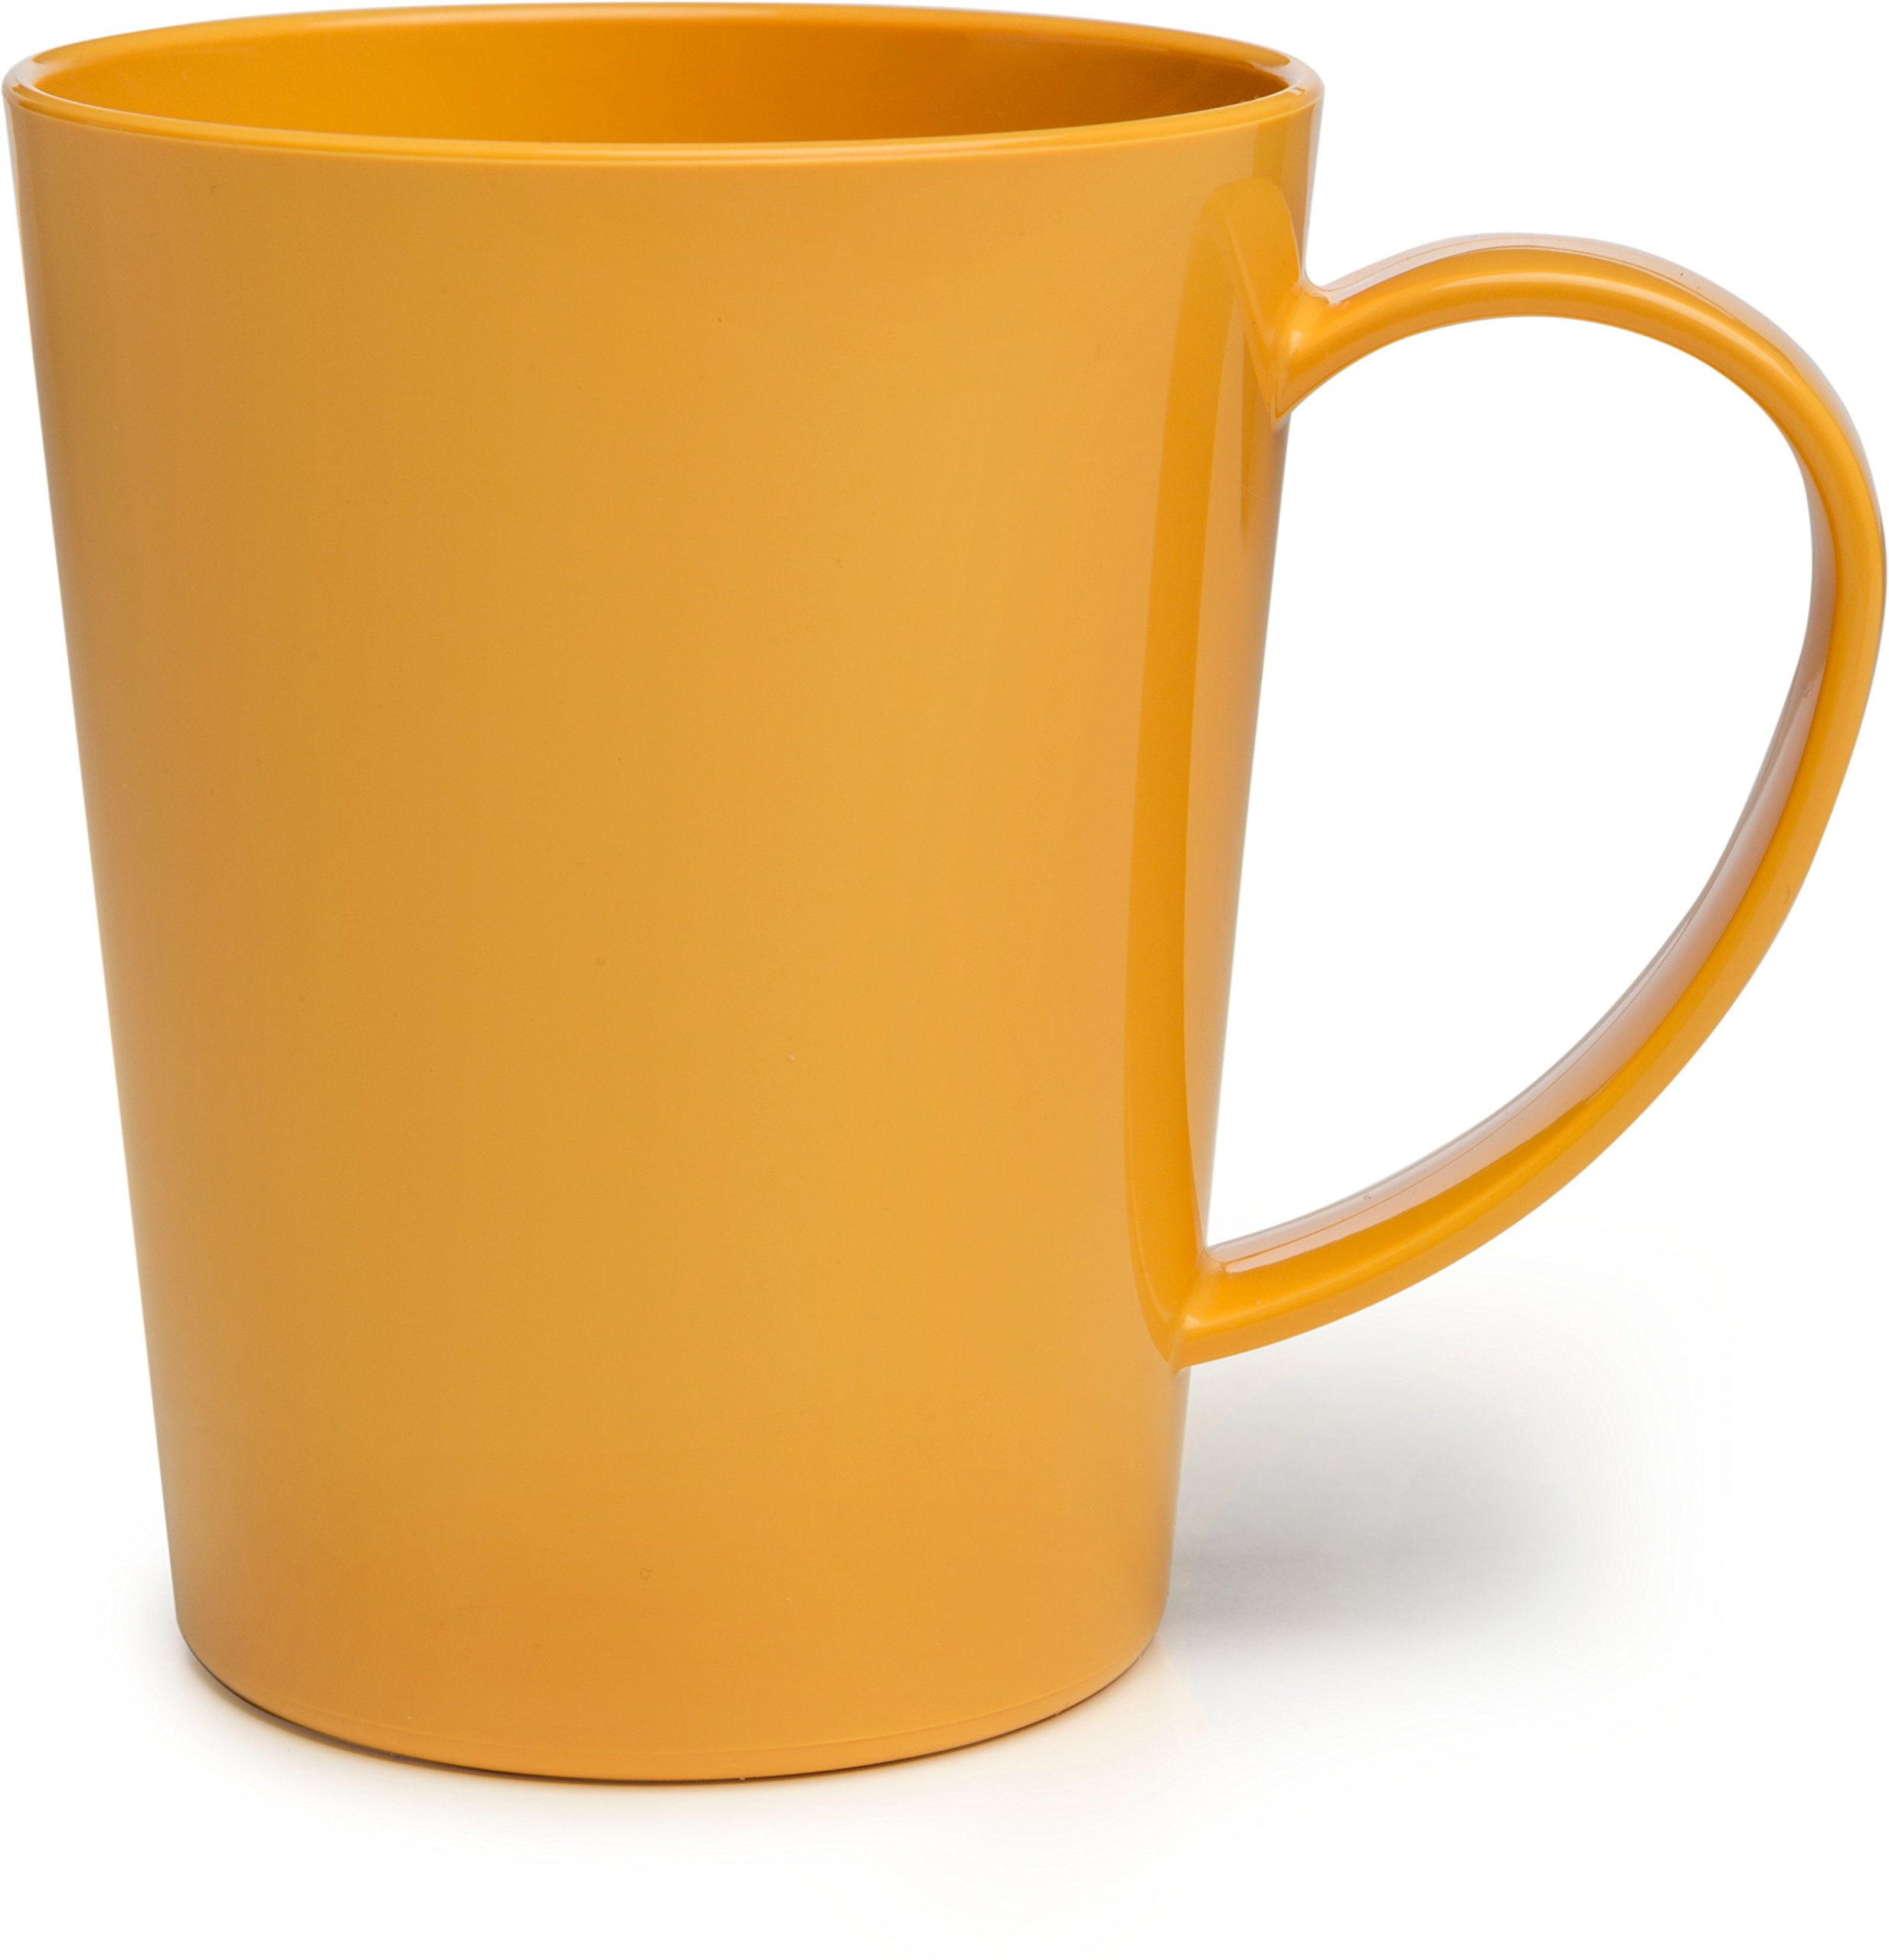 Carlisle 4306822 Break-Resistant Tritan Coffee Mug, BPA Free Plastic, 12 oz, Honey Yellow (Pack of 12)